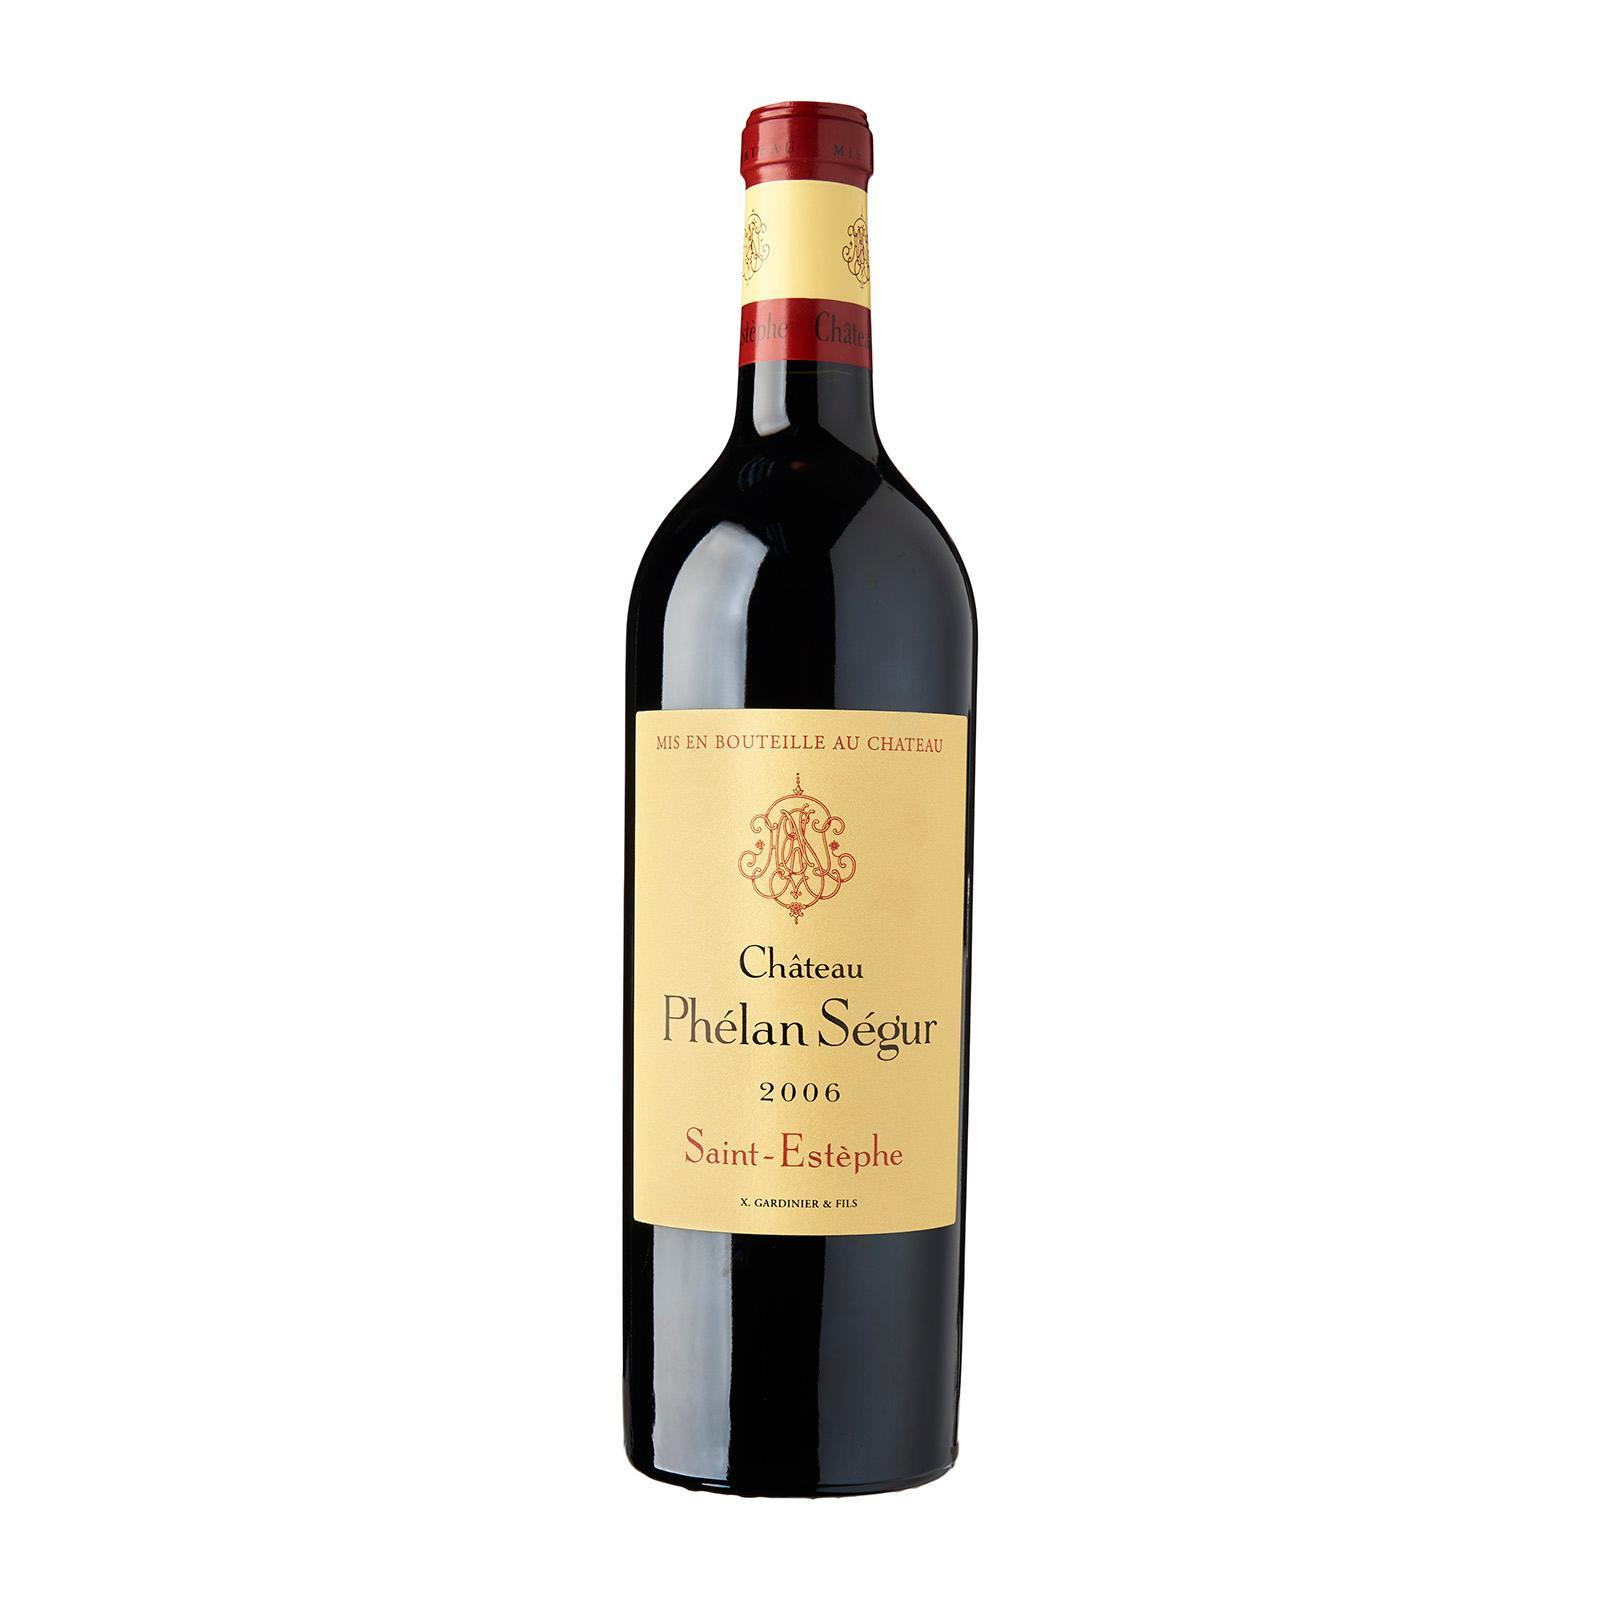 Chateau Phelan Segur - Saint Estephe 2012 - Merlot/Cabernet Sauvignon - Bordeaux - By The Vintage Wine Club